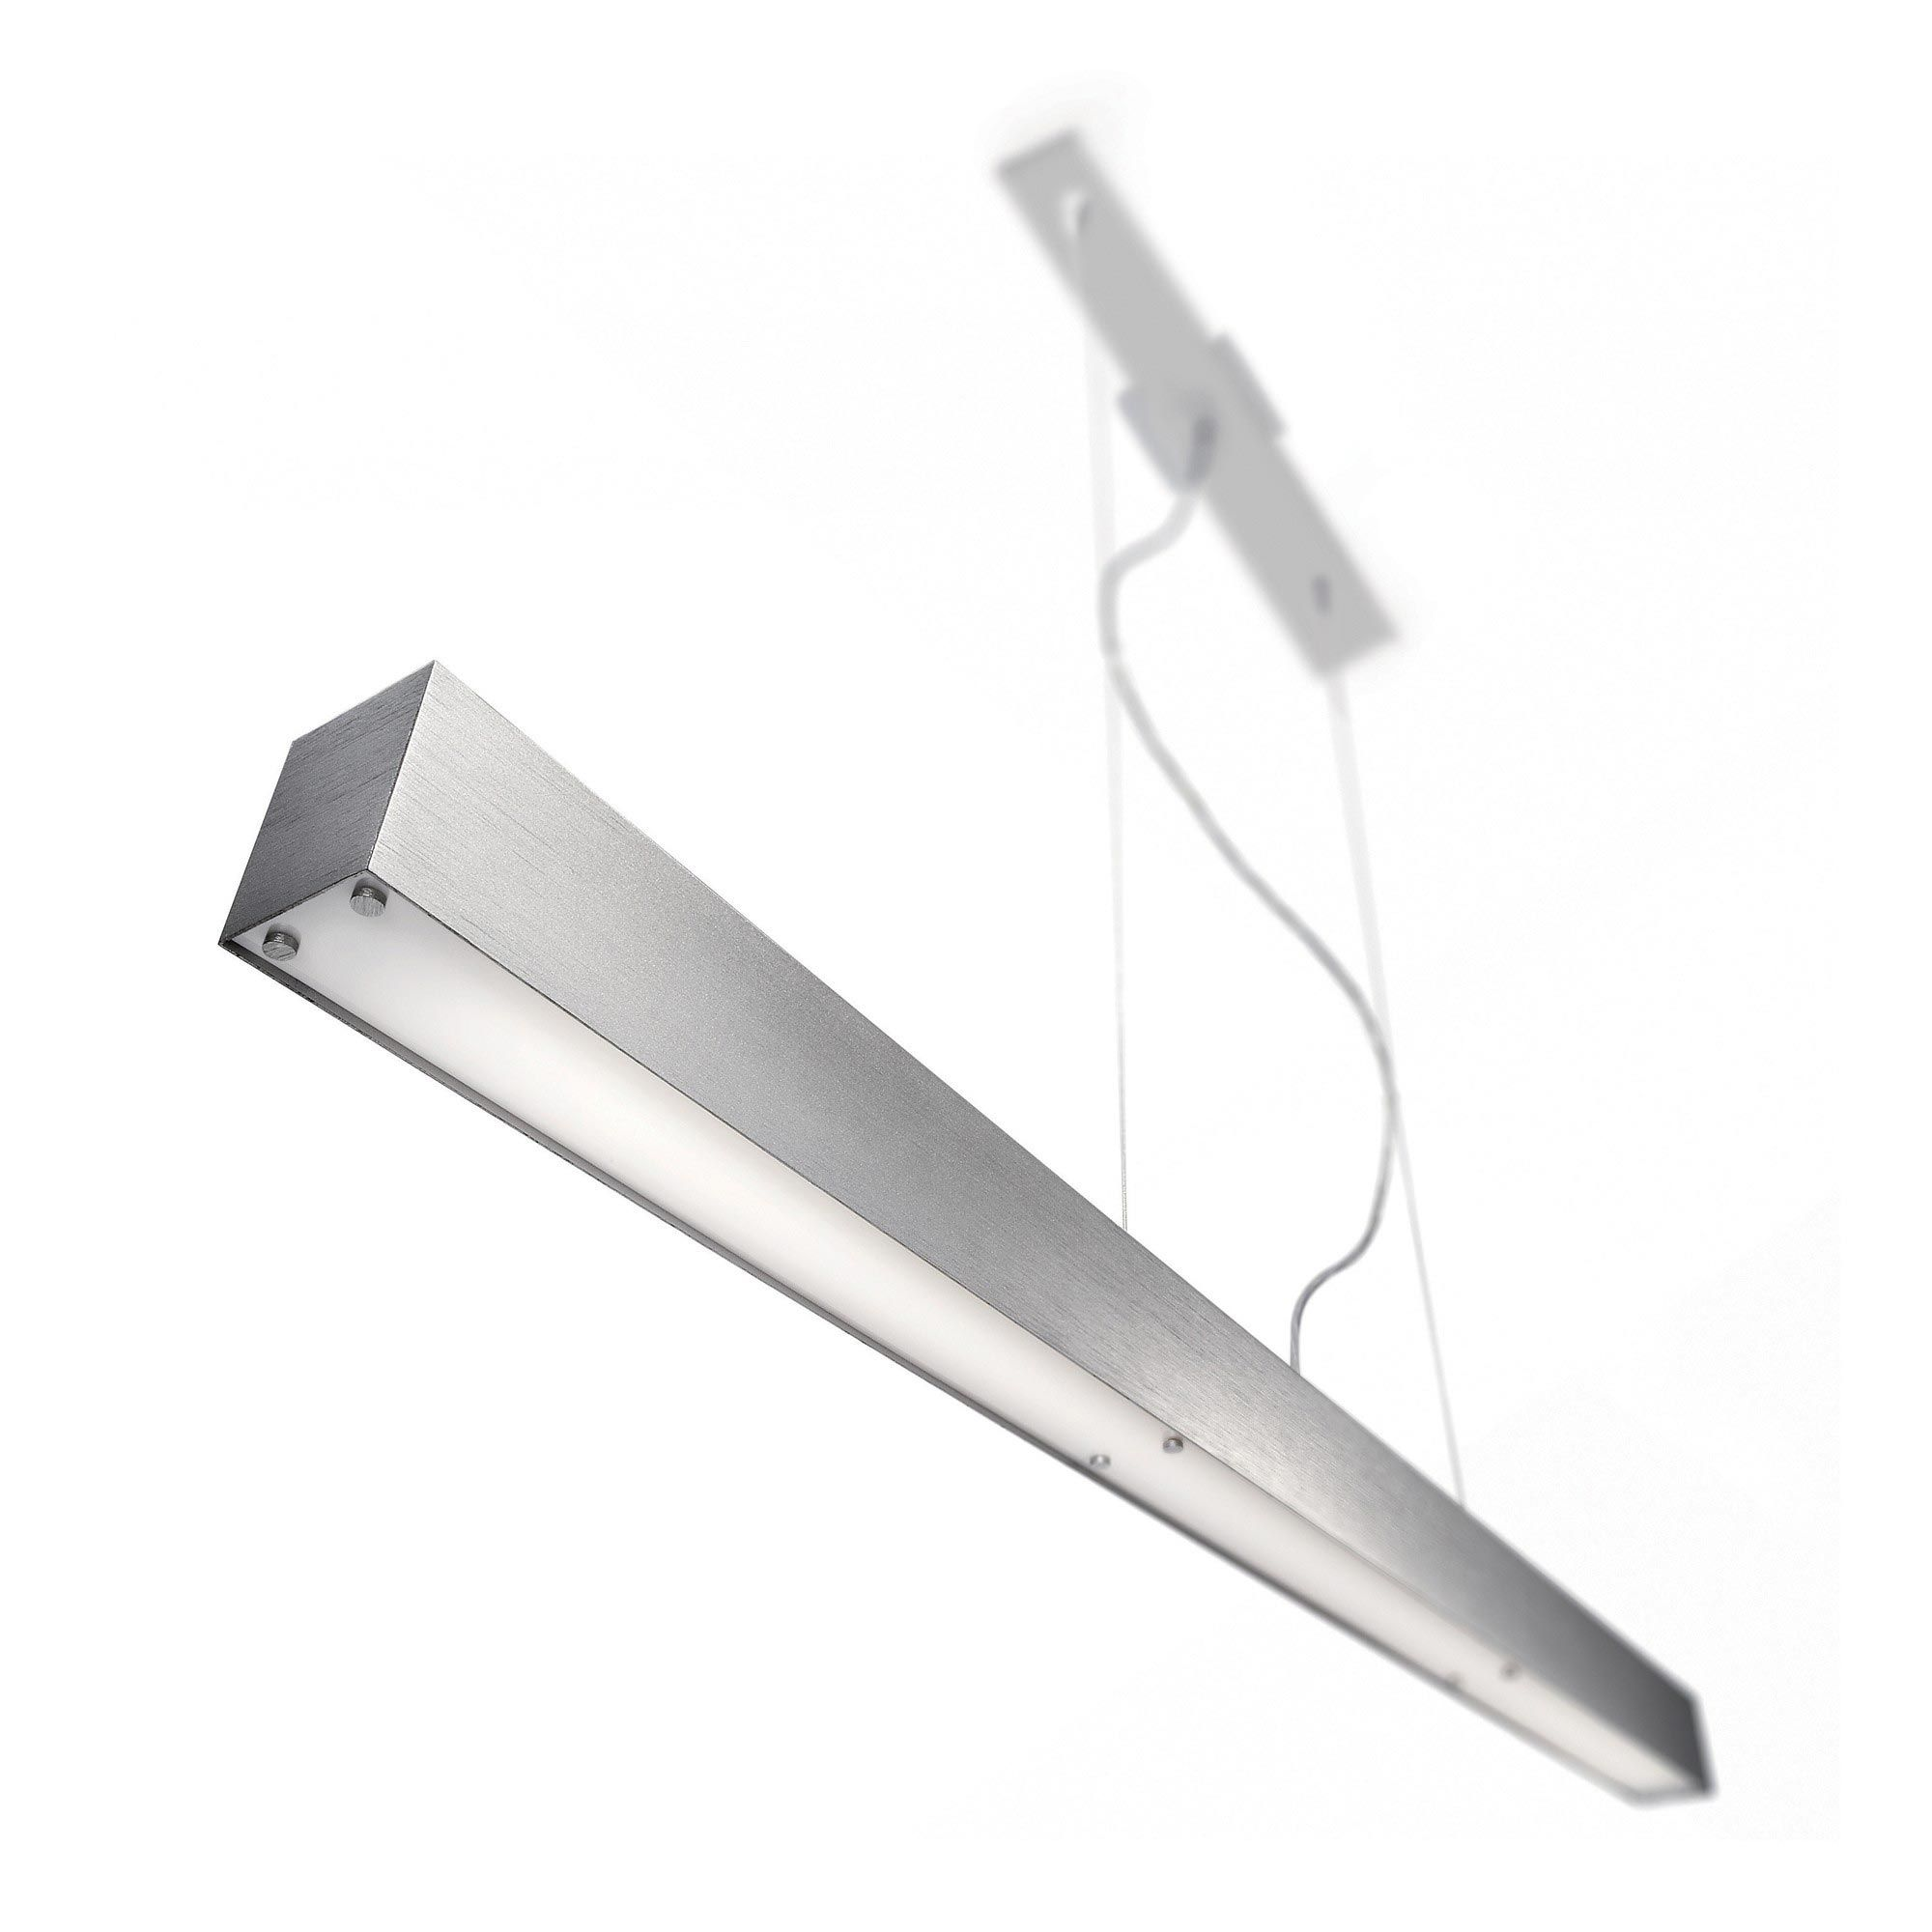 Axis Linear Pendant By Philips Consumer Lighting 403414848 Linear Lighting Philips Lighting Inspiration